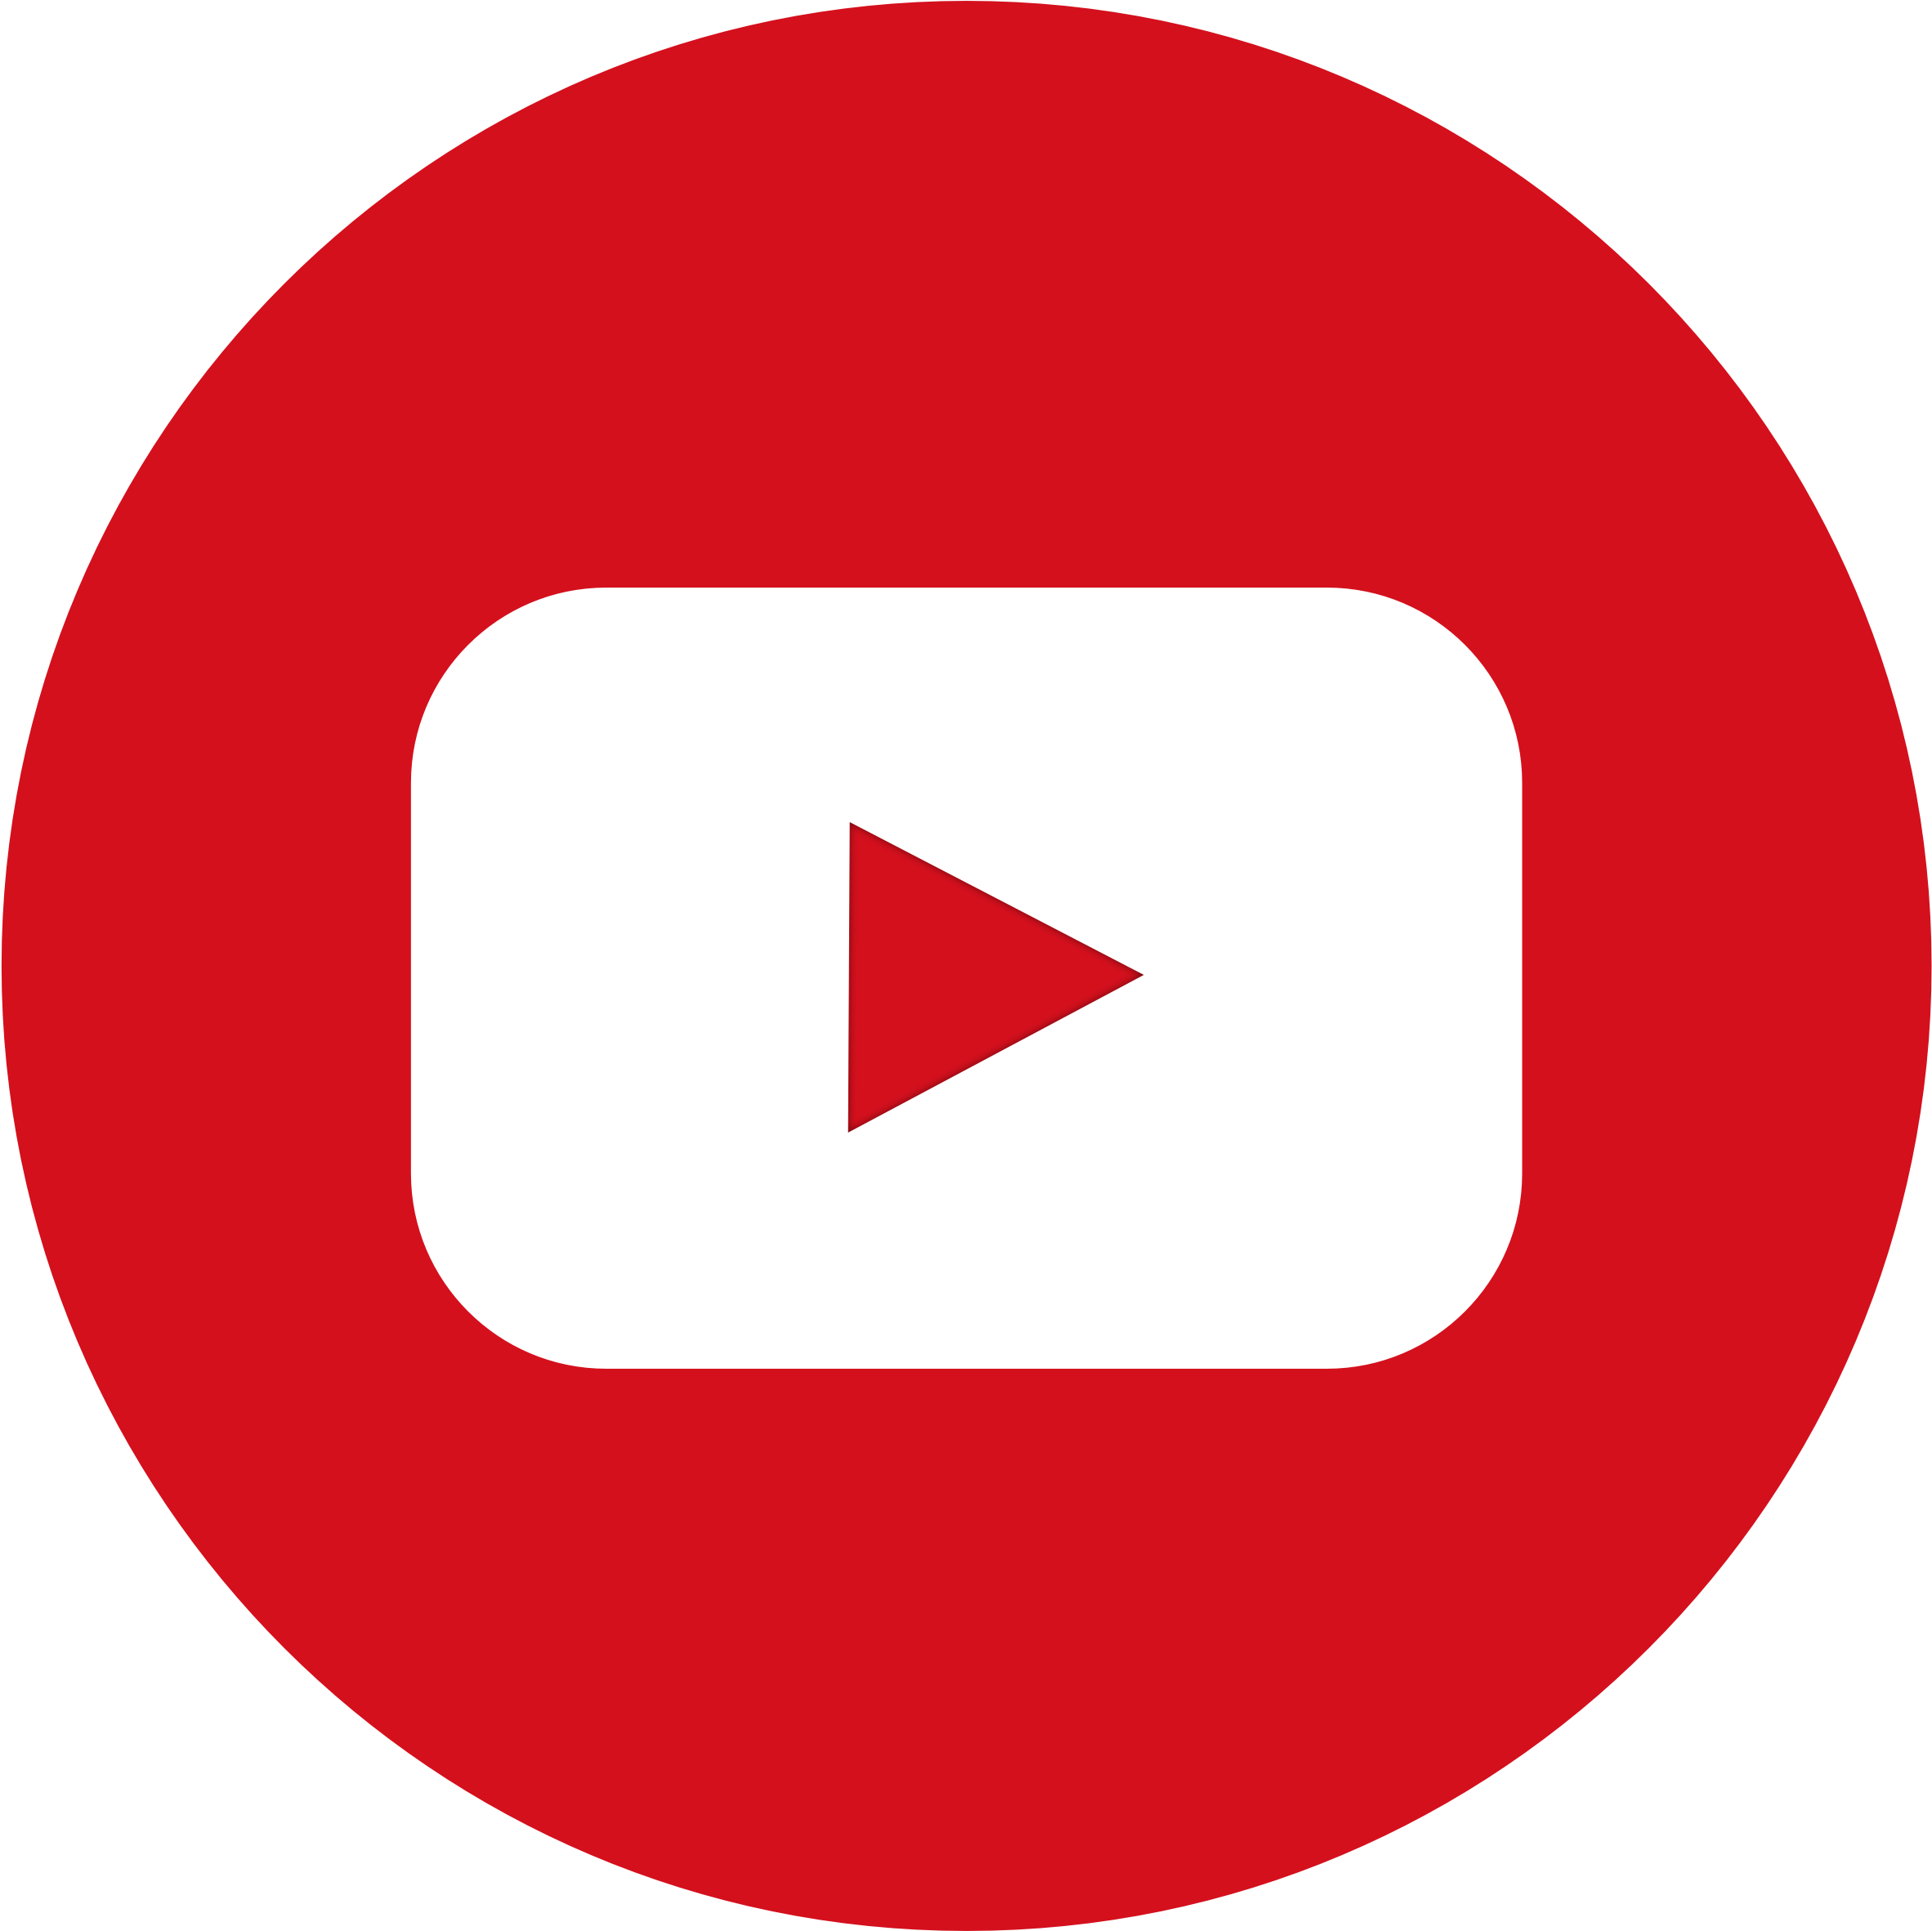 Download Logo Youtube Png Transparent Background Youtube Icon Png Image With No Background Pngkey Com